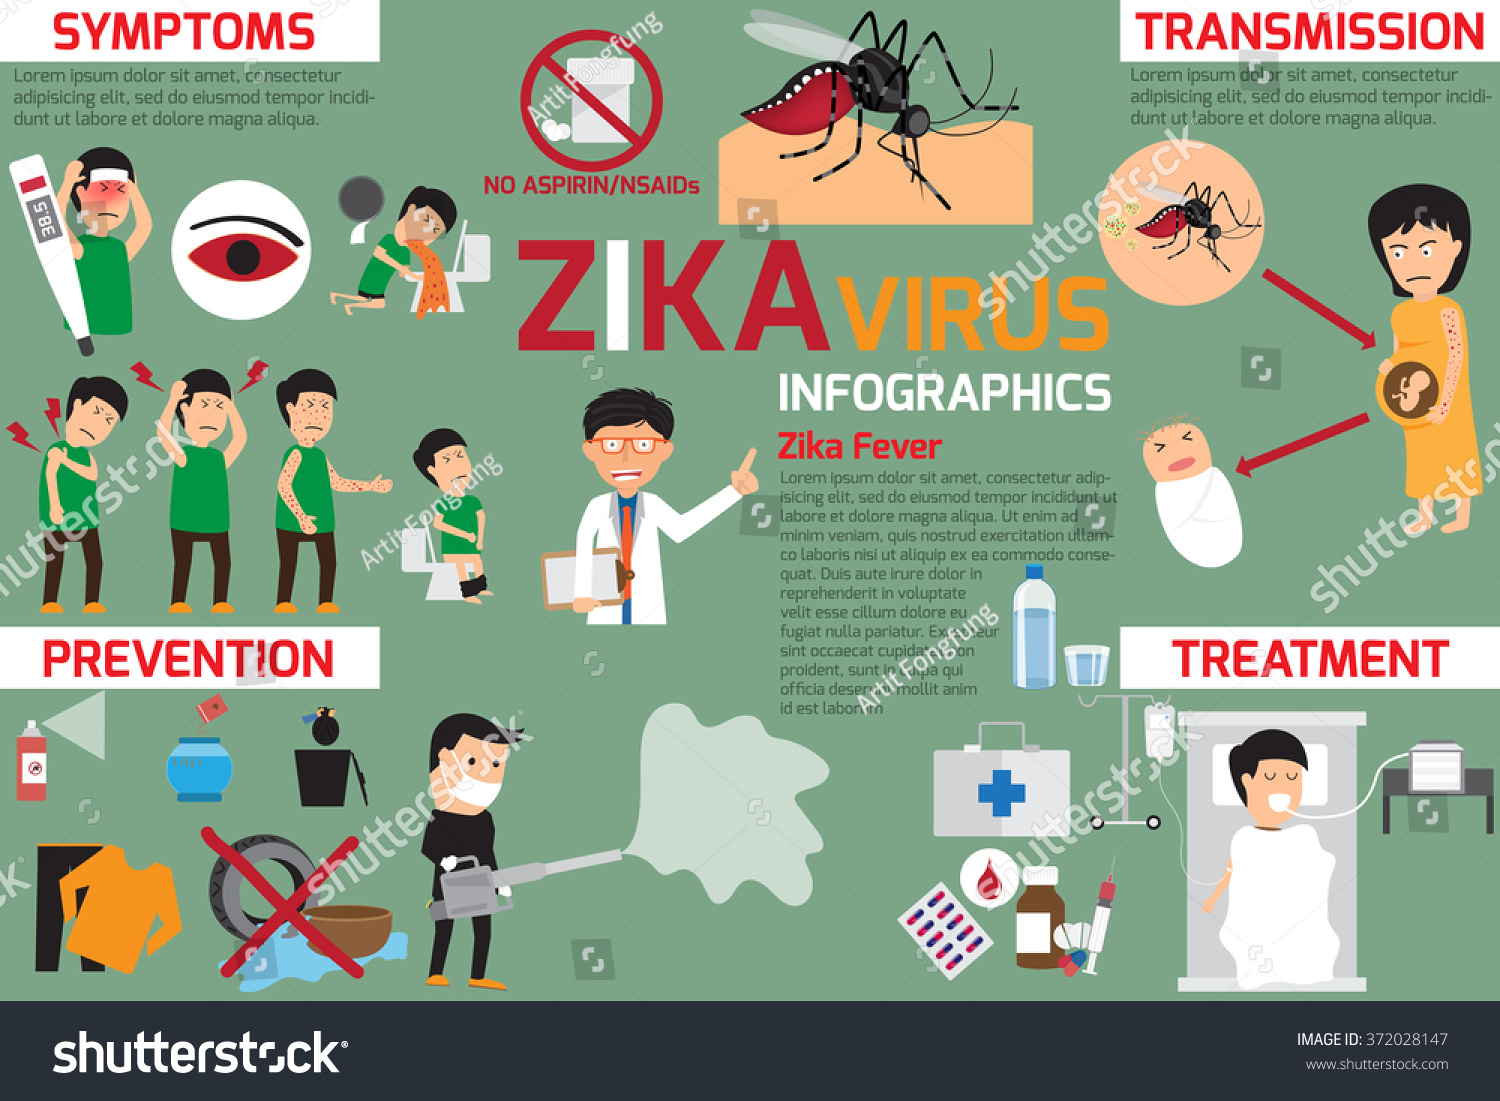 zika virus fever infographic transmission prevention stock vector 372028147